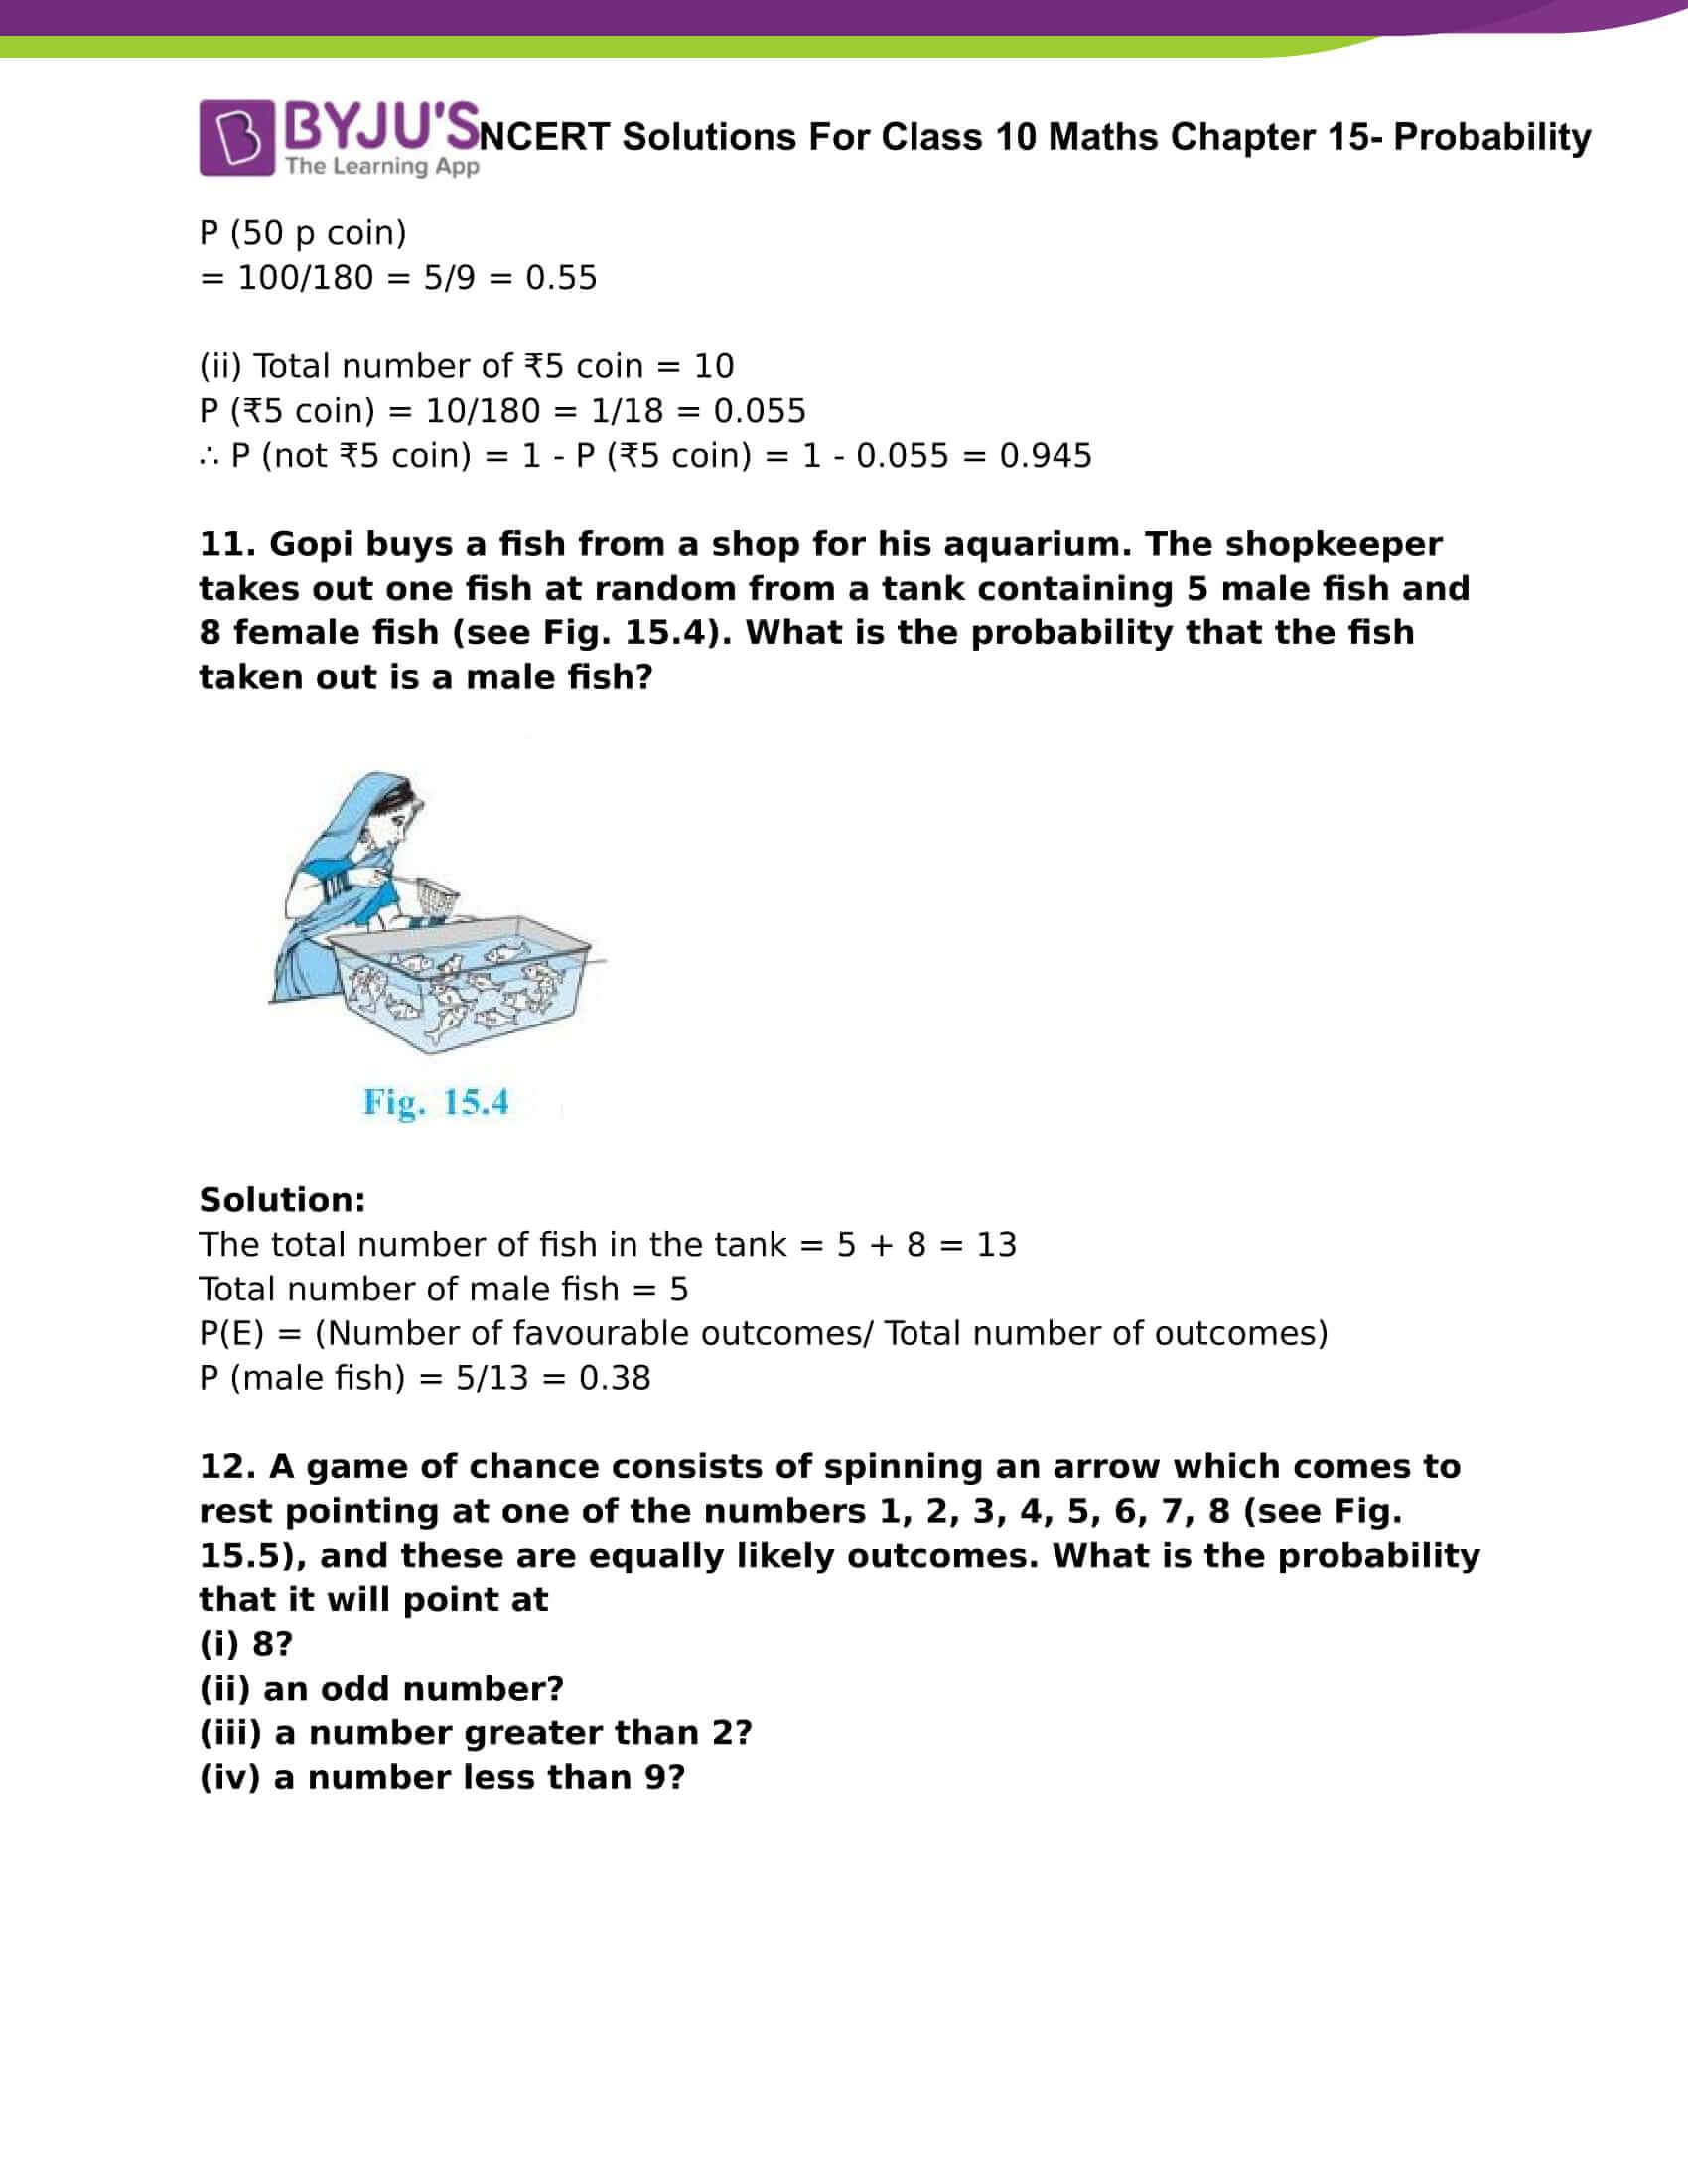 NCERT Solutions For Class 10 Maths Chapter 15 Probability Part 05